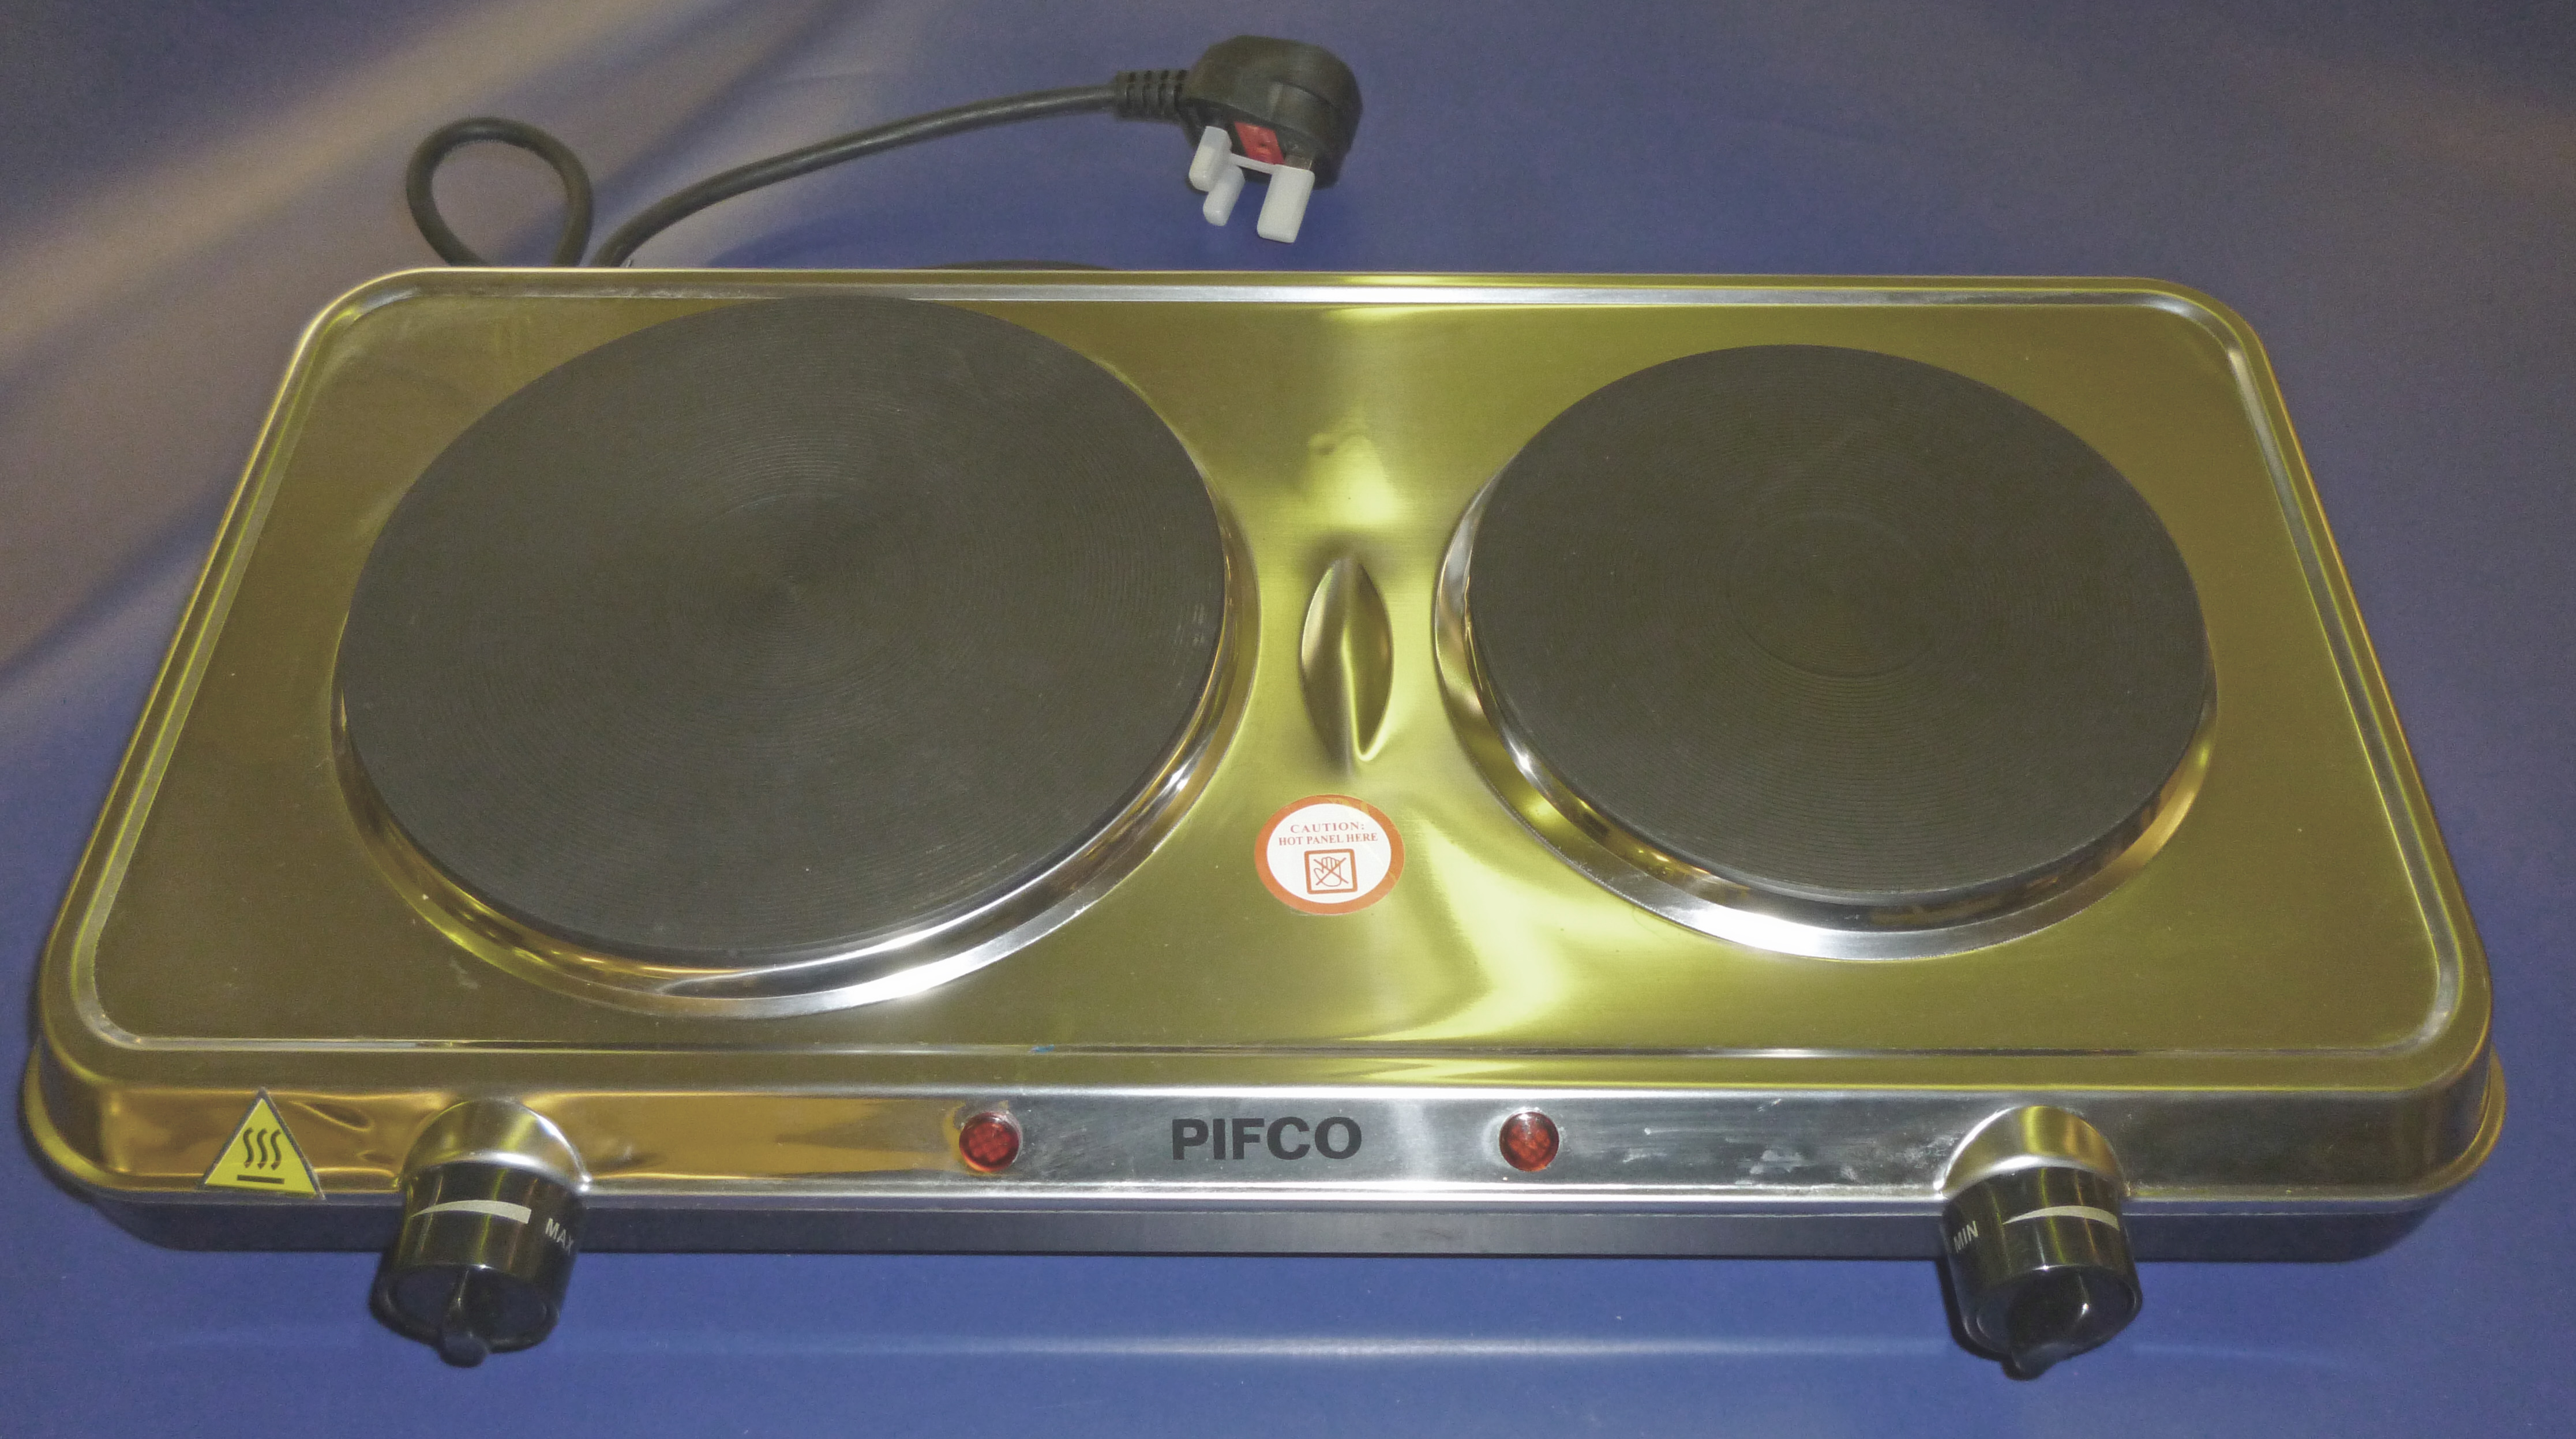 Pifco Double Boiling Ring 240volts. Stainless Steel